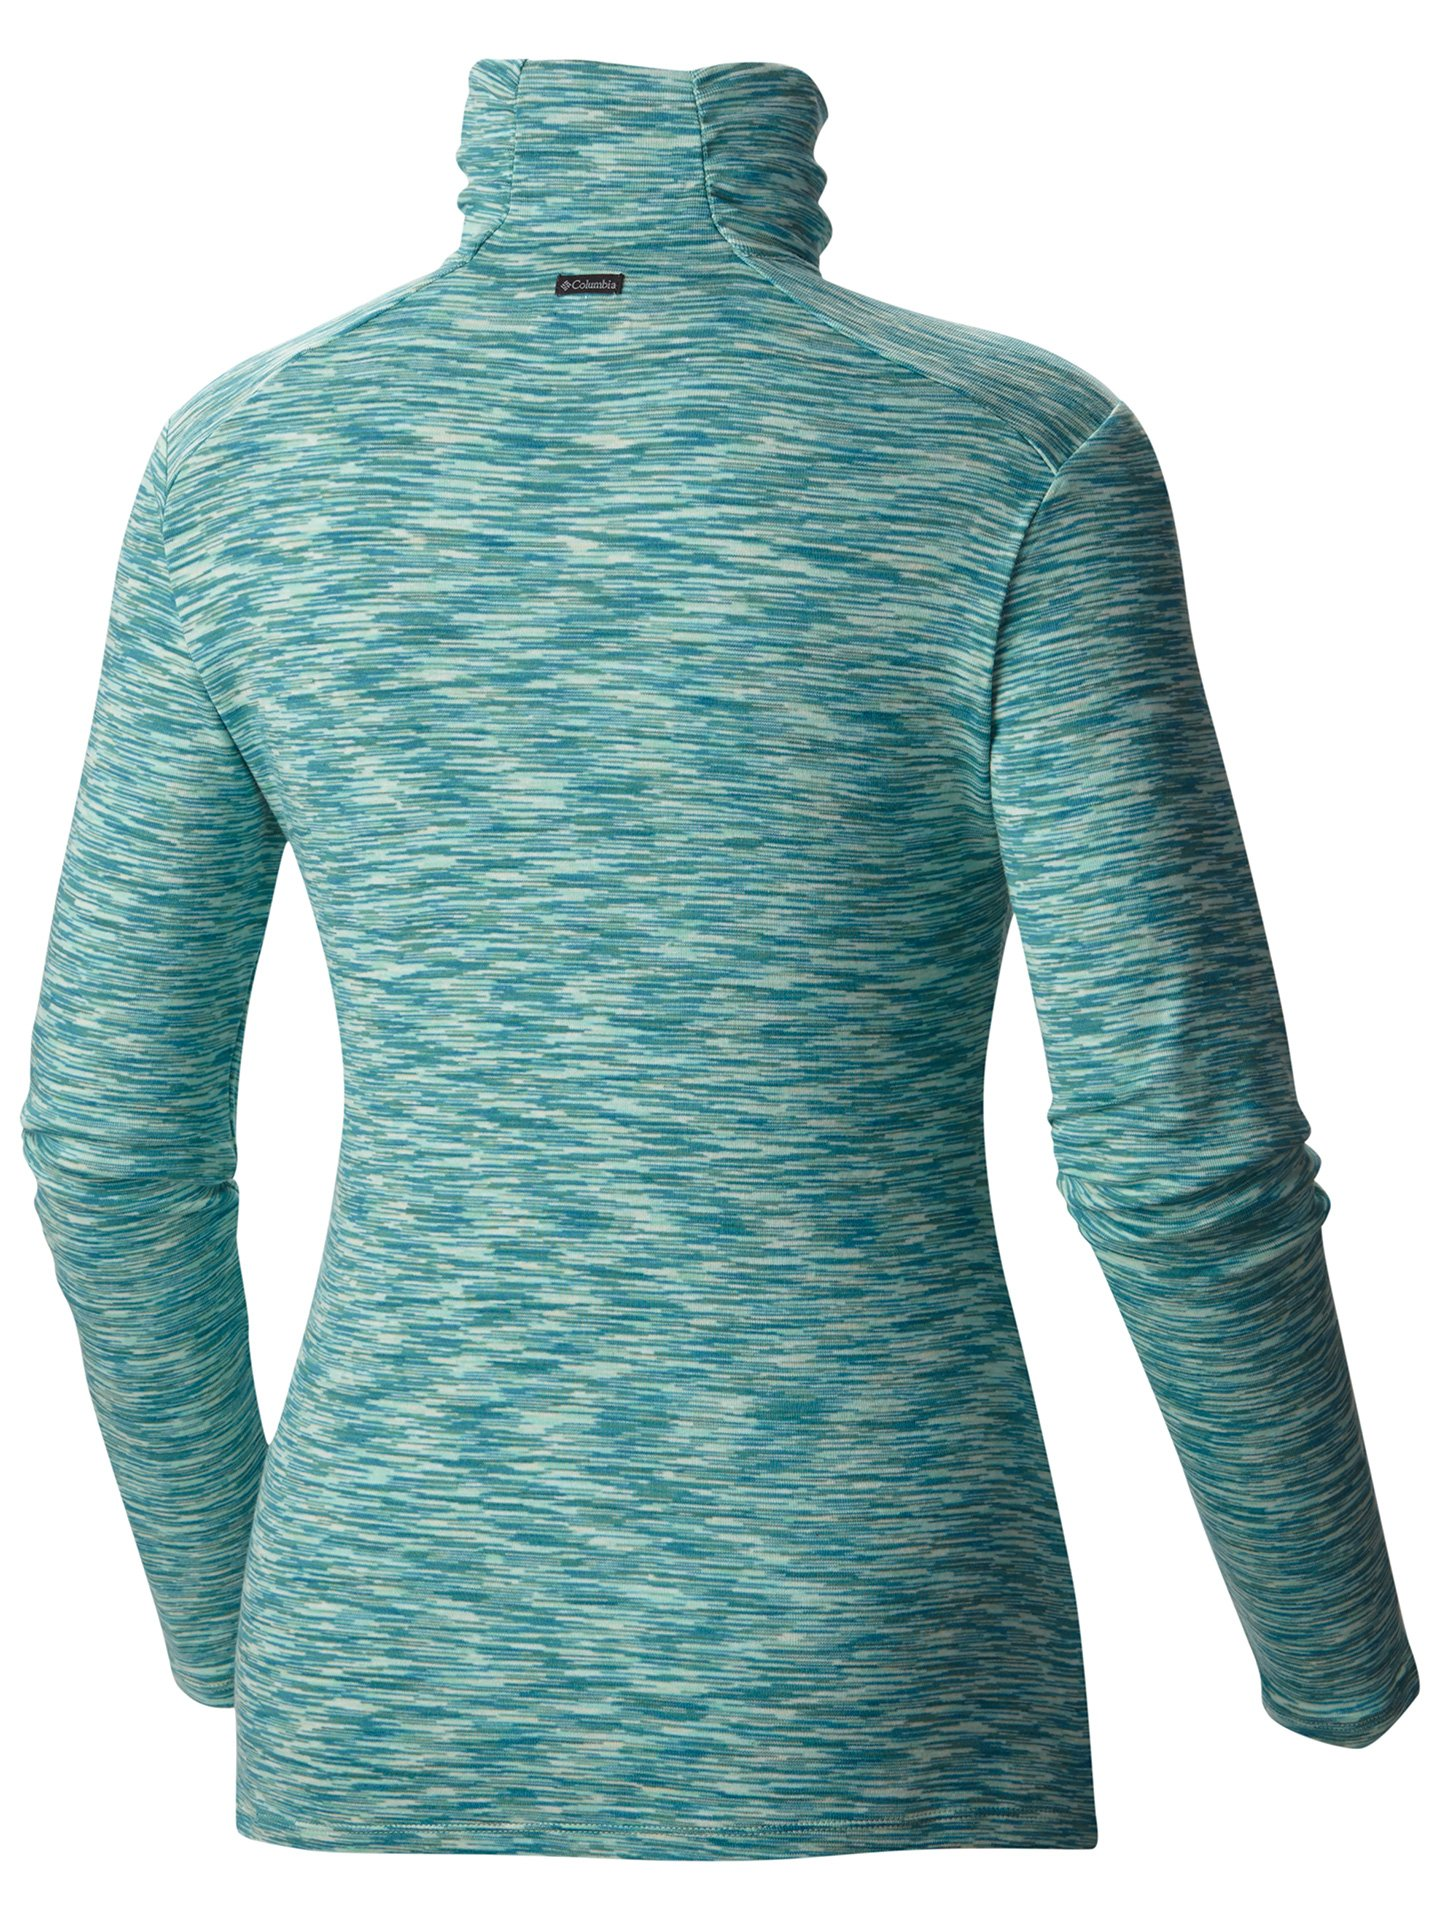 Columbia Women's Outer Spaced Half Zip, Dusty Green, Large by Columbia (Image #2)